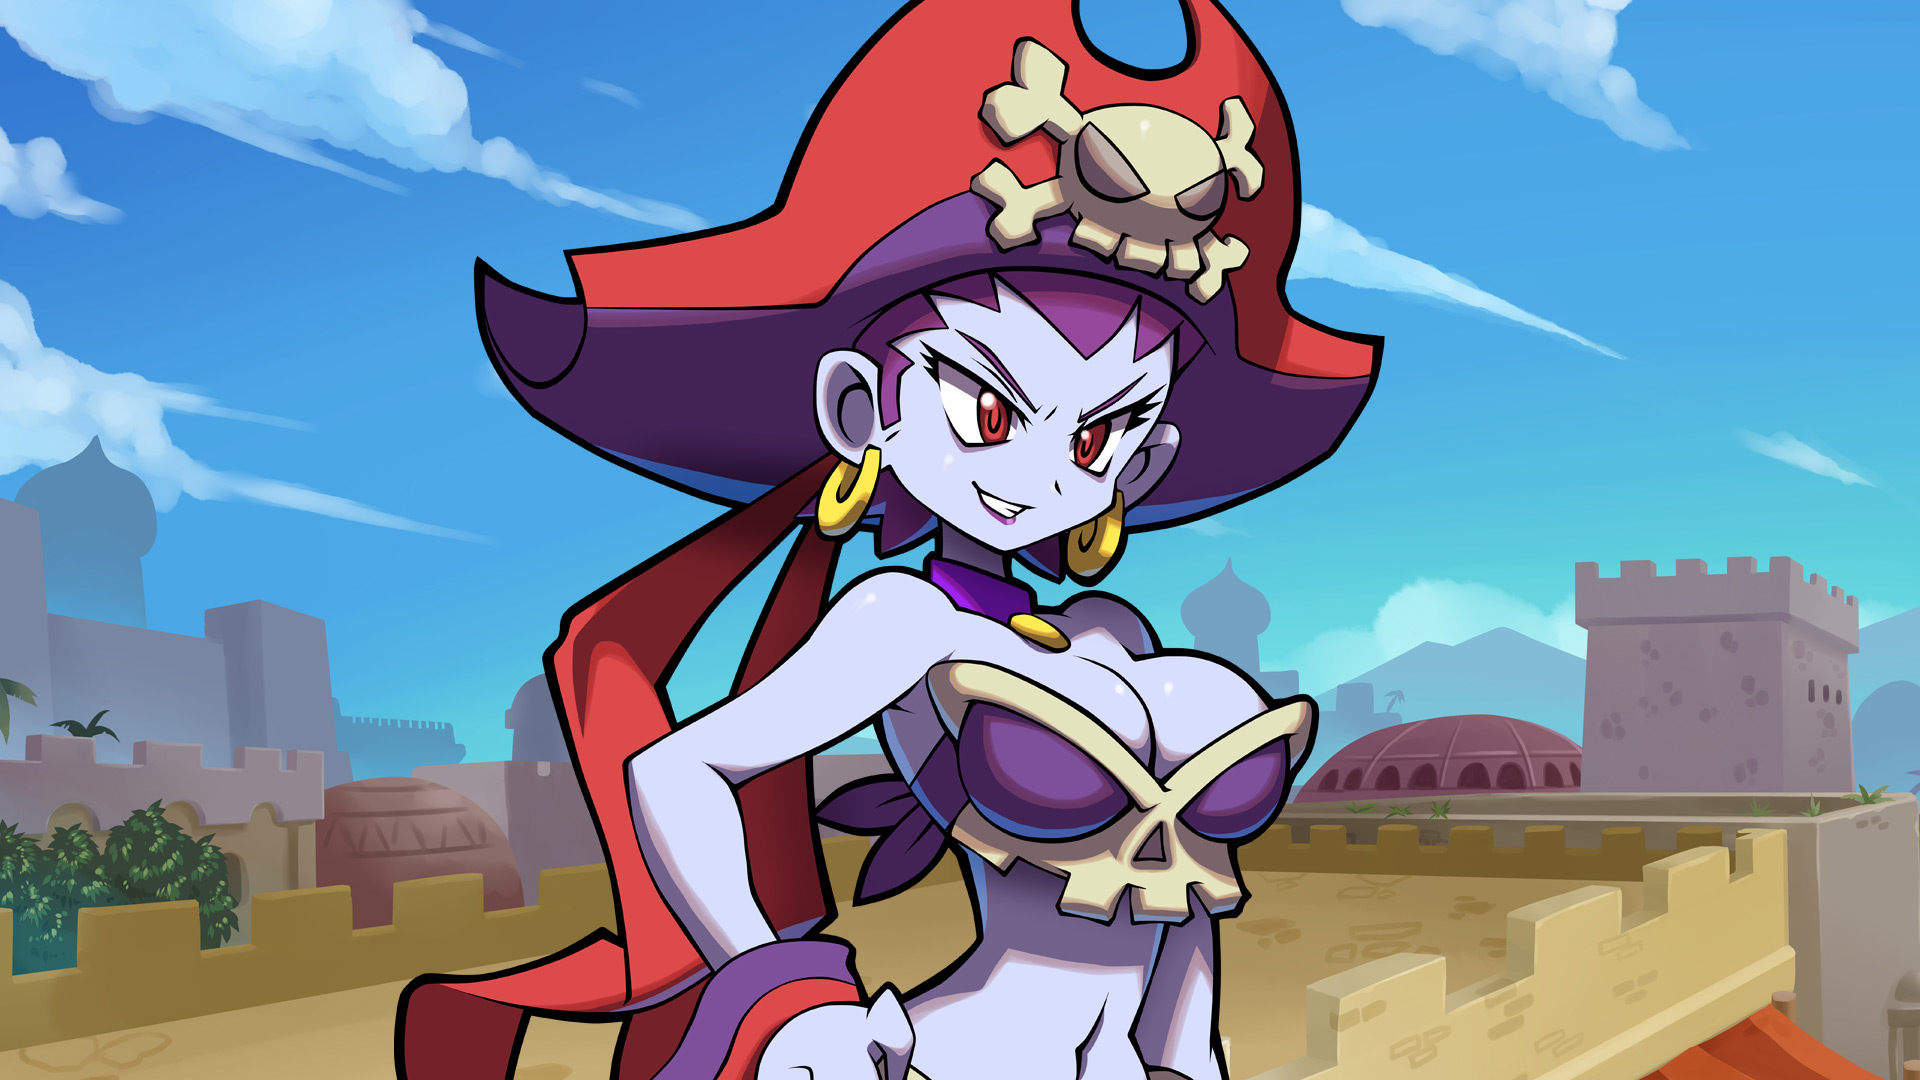 Risky boots x tinkerbat futa 20 animation by lusty lizard